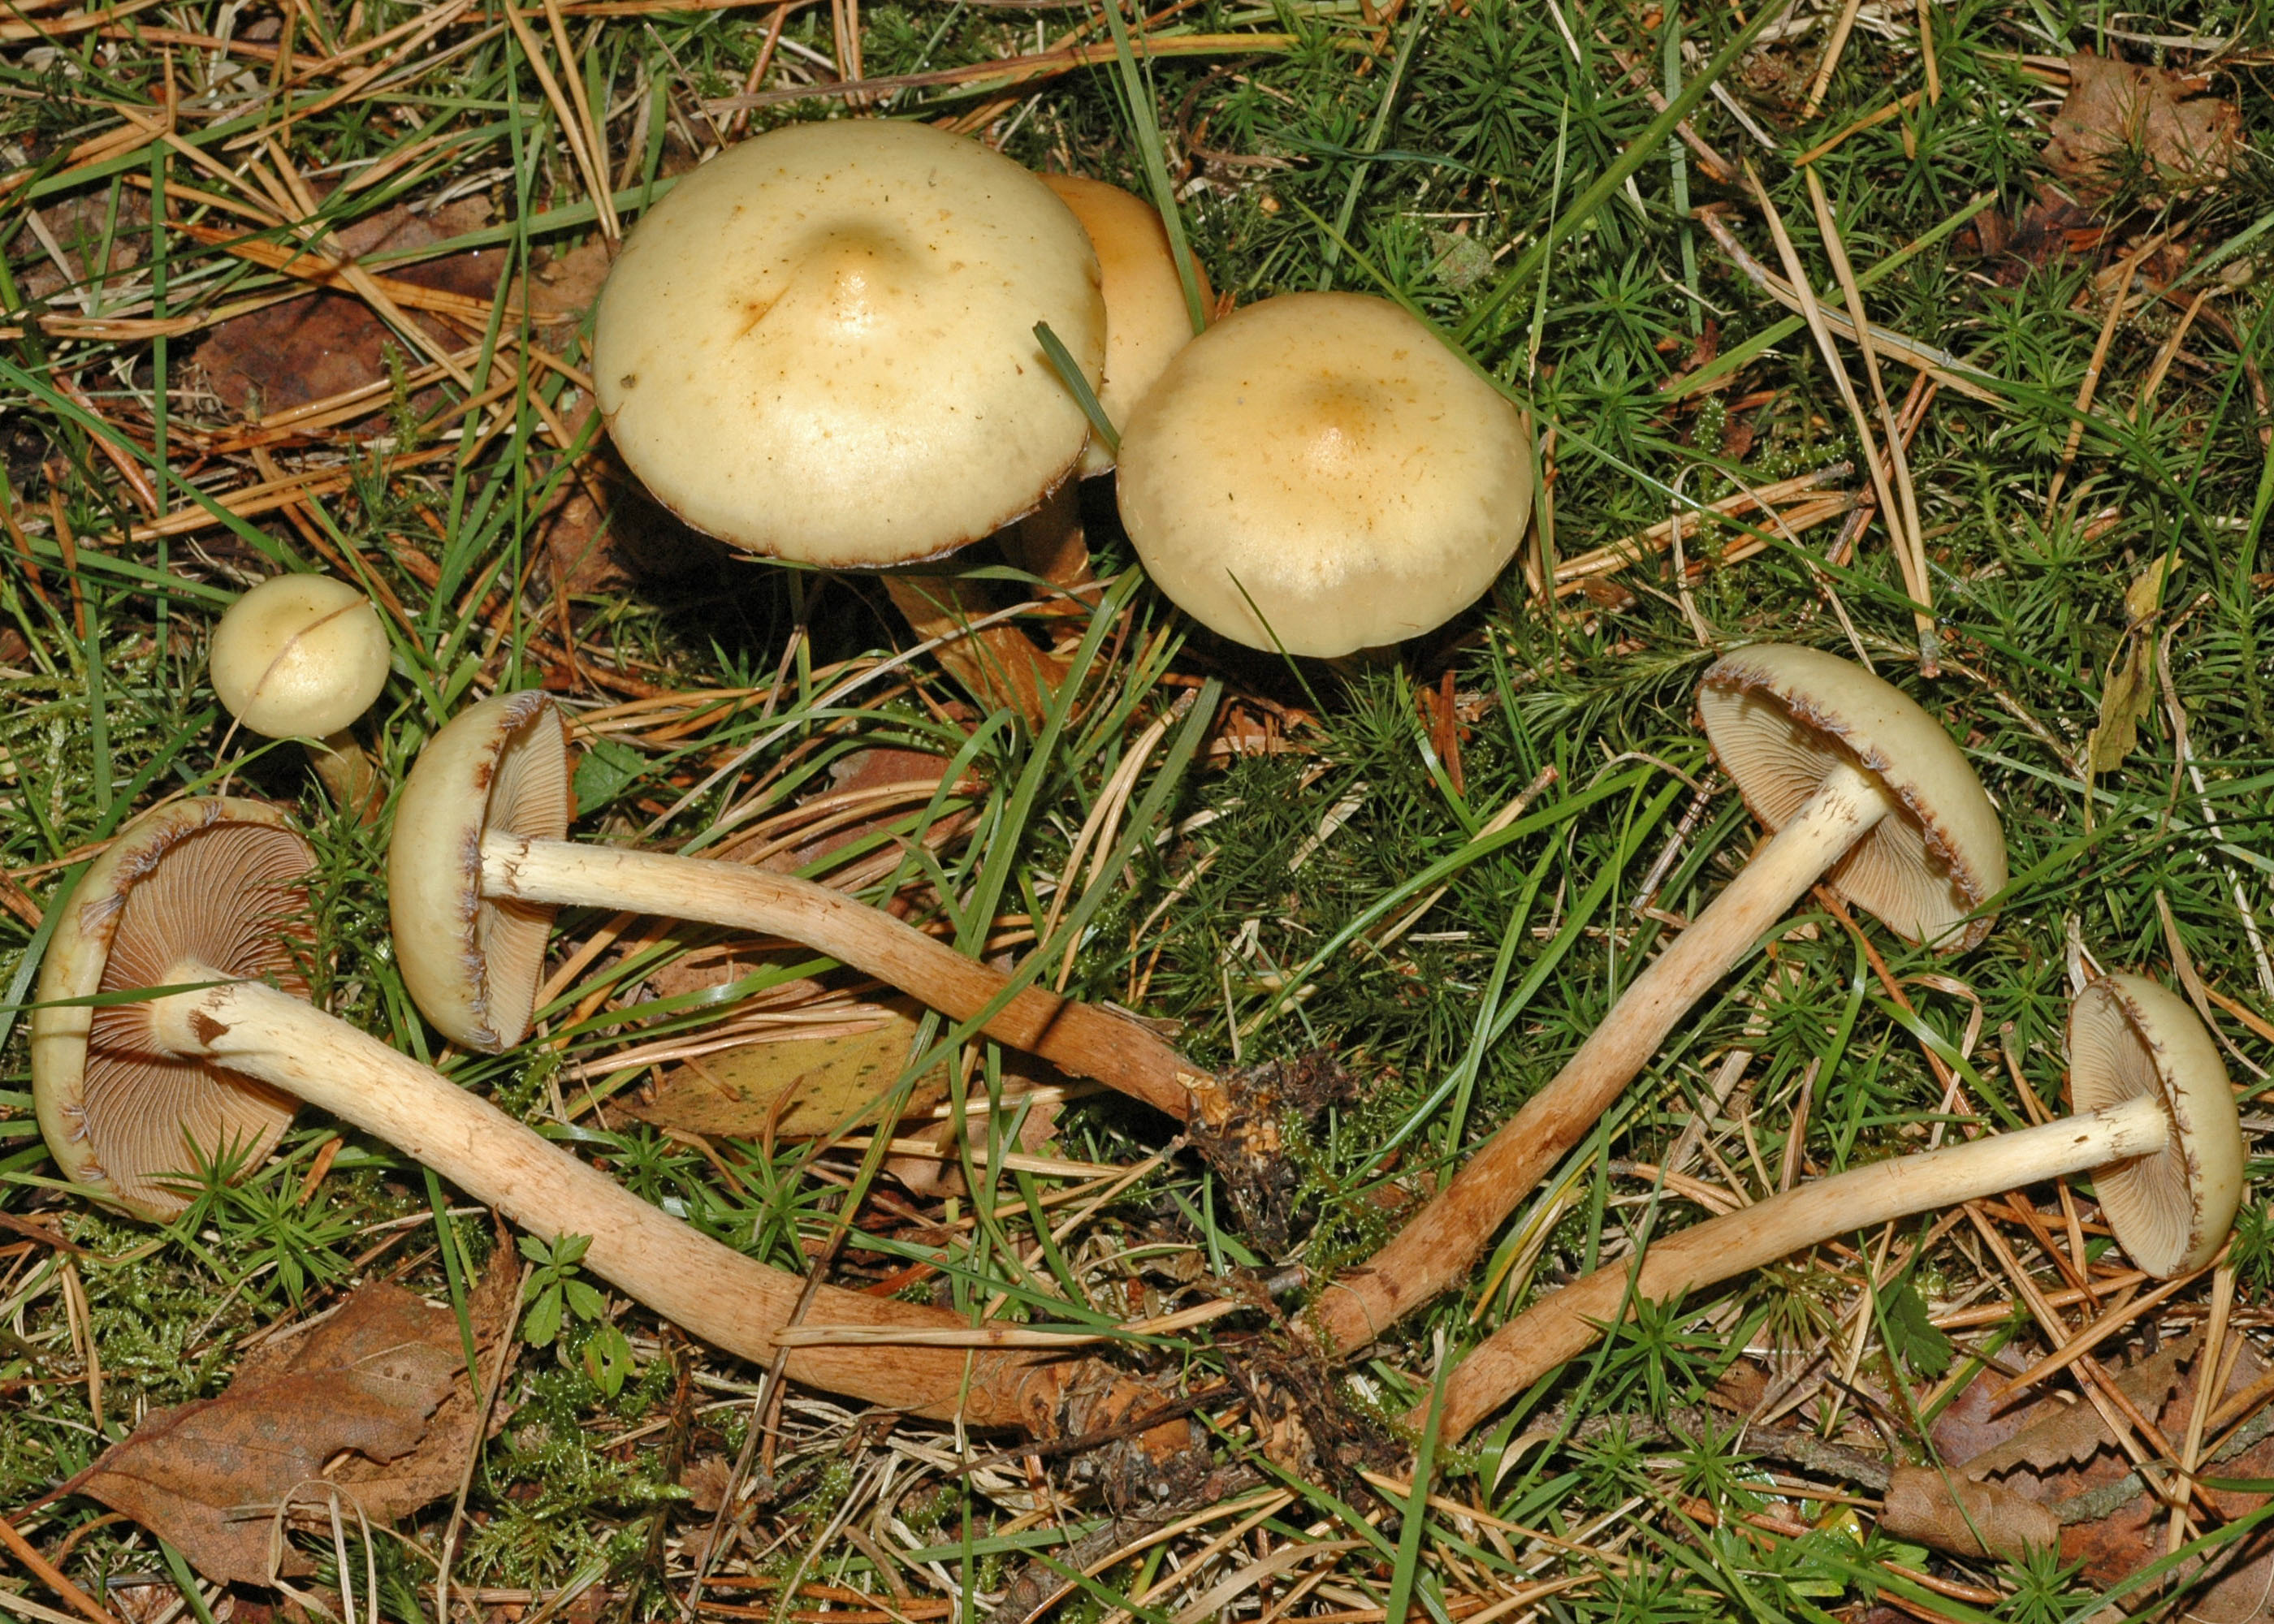 Pholiota alnicola